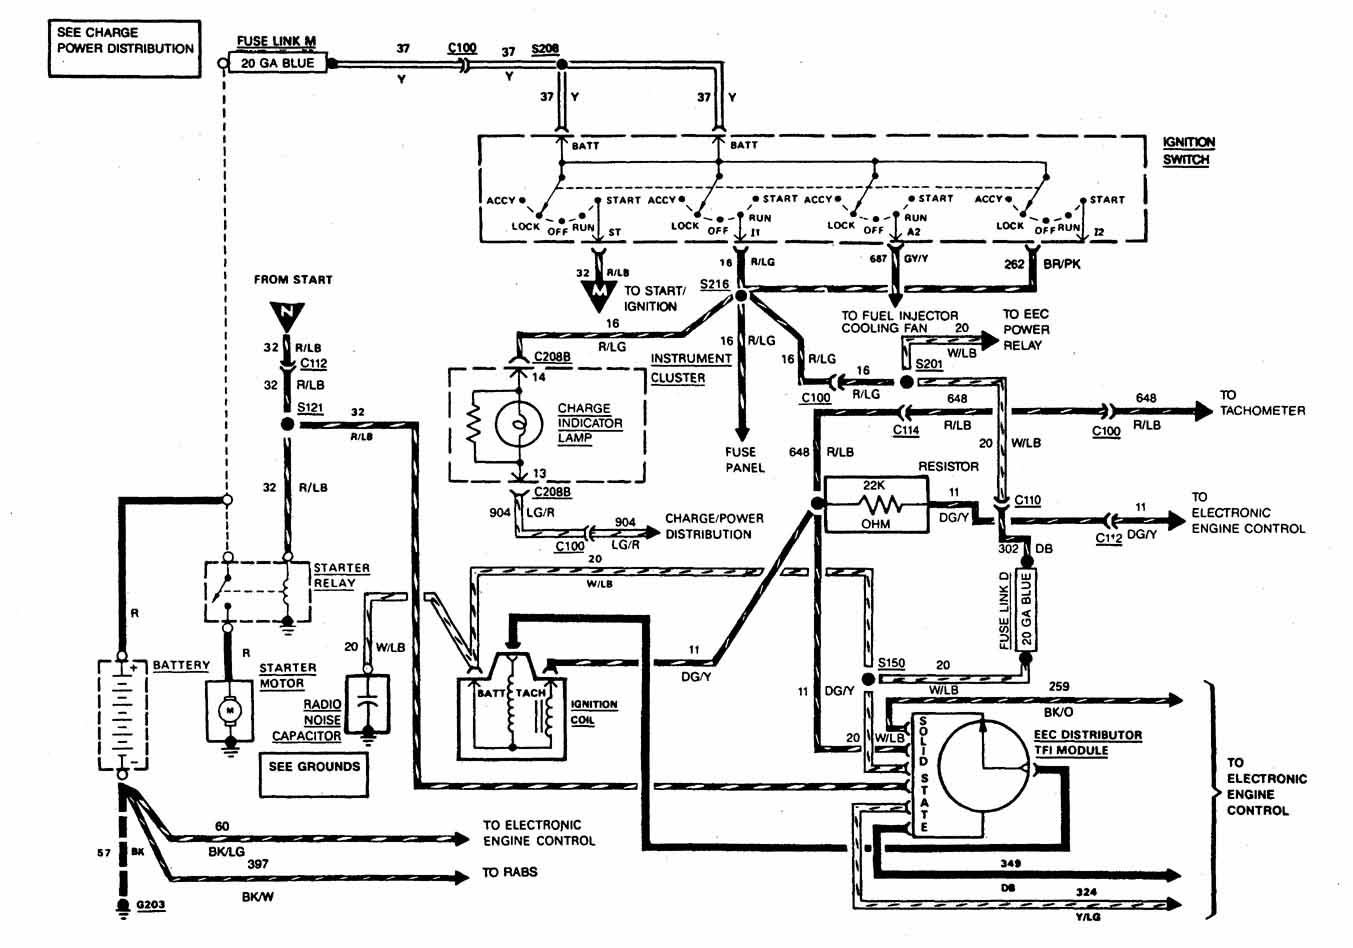 Wiring Diagram 1989 Ford F150 - Data Wiring Diagram Site - Ford F150 Starter Solenoid Wiring Diagram